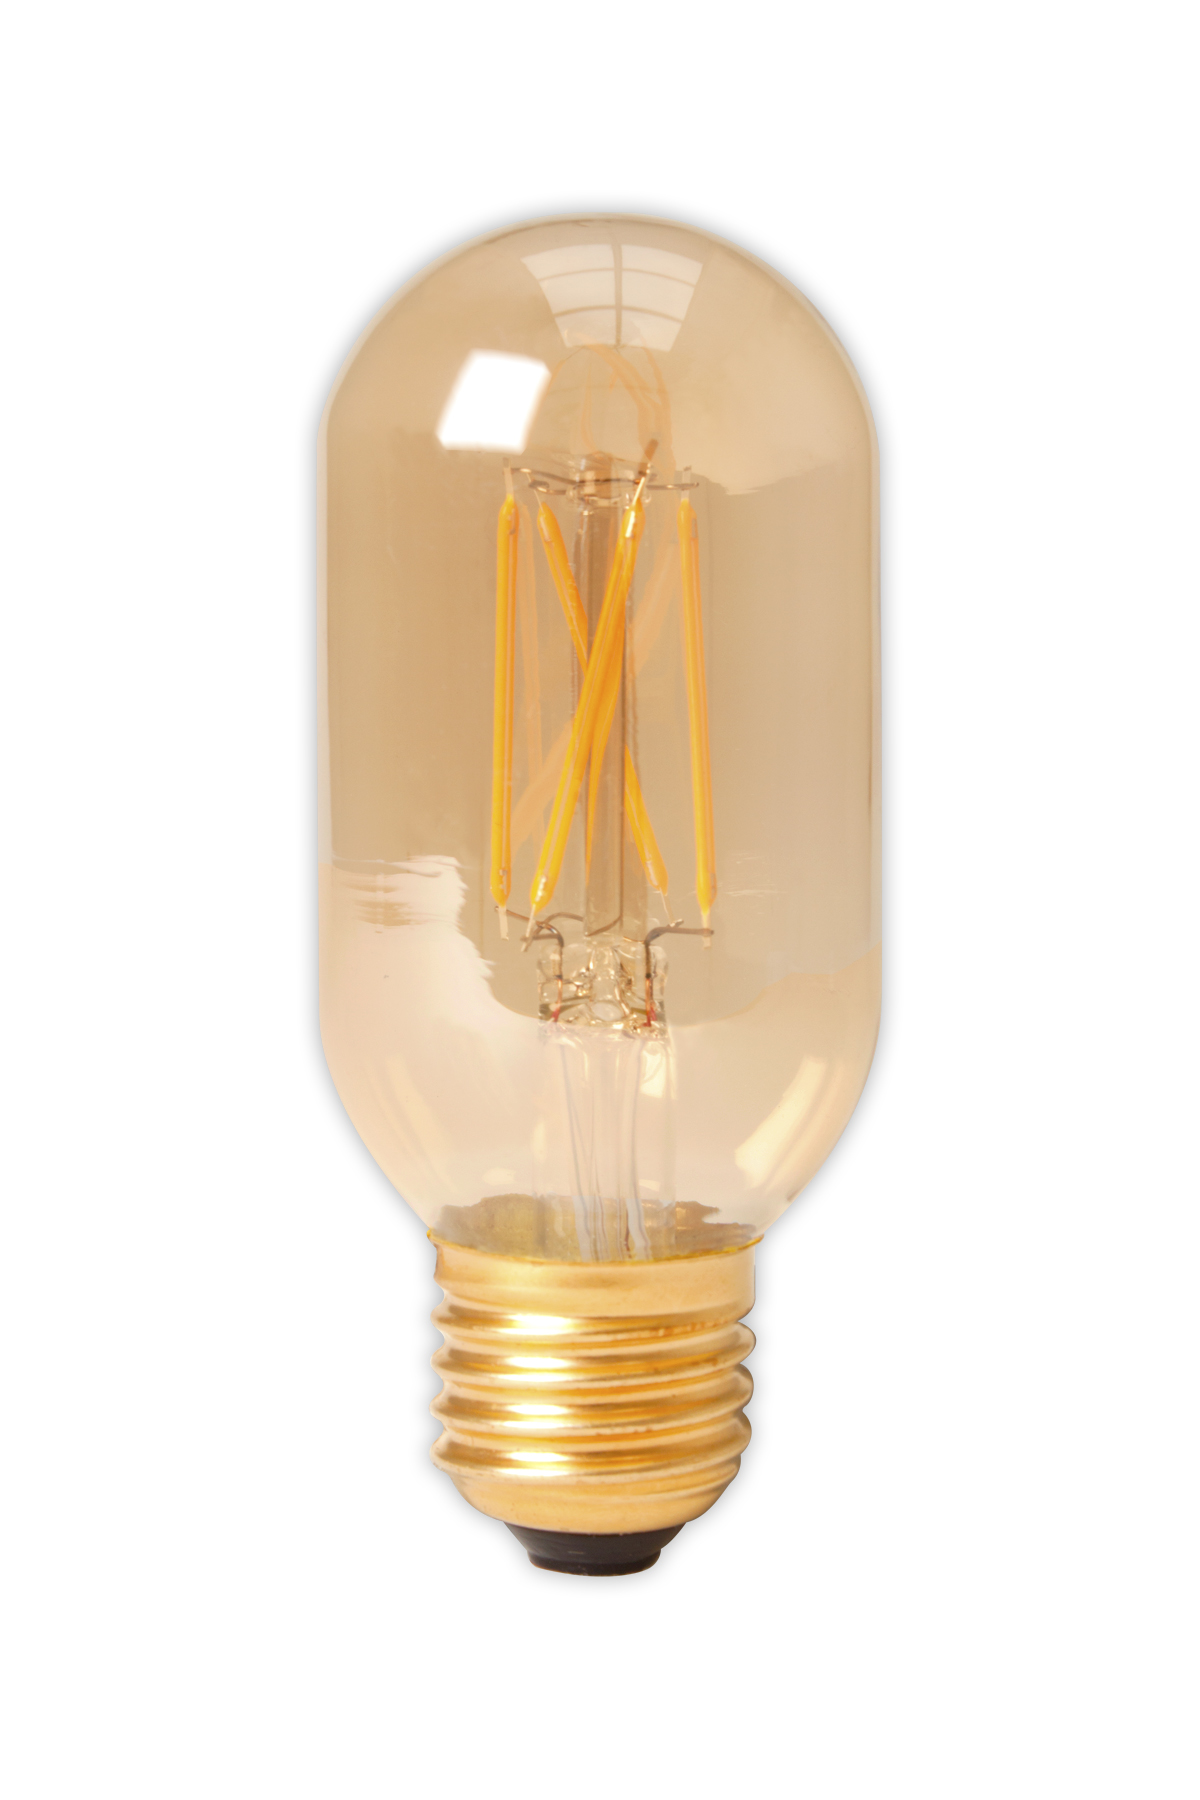 Calex buislamp LED filament 4W (vervangt 40W) grote fitting E27 45x110mm goud